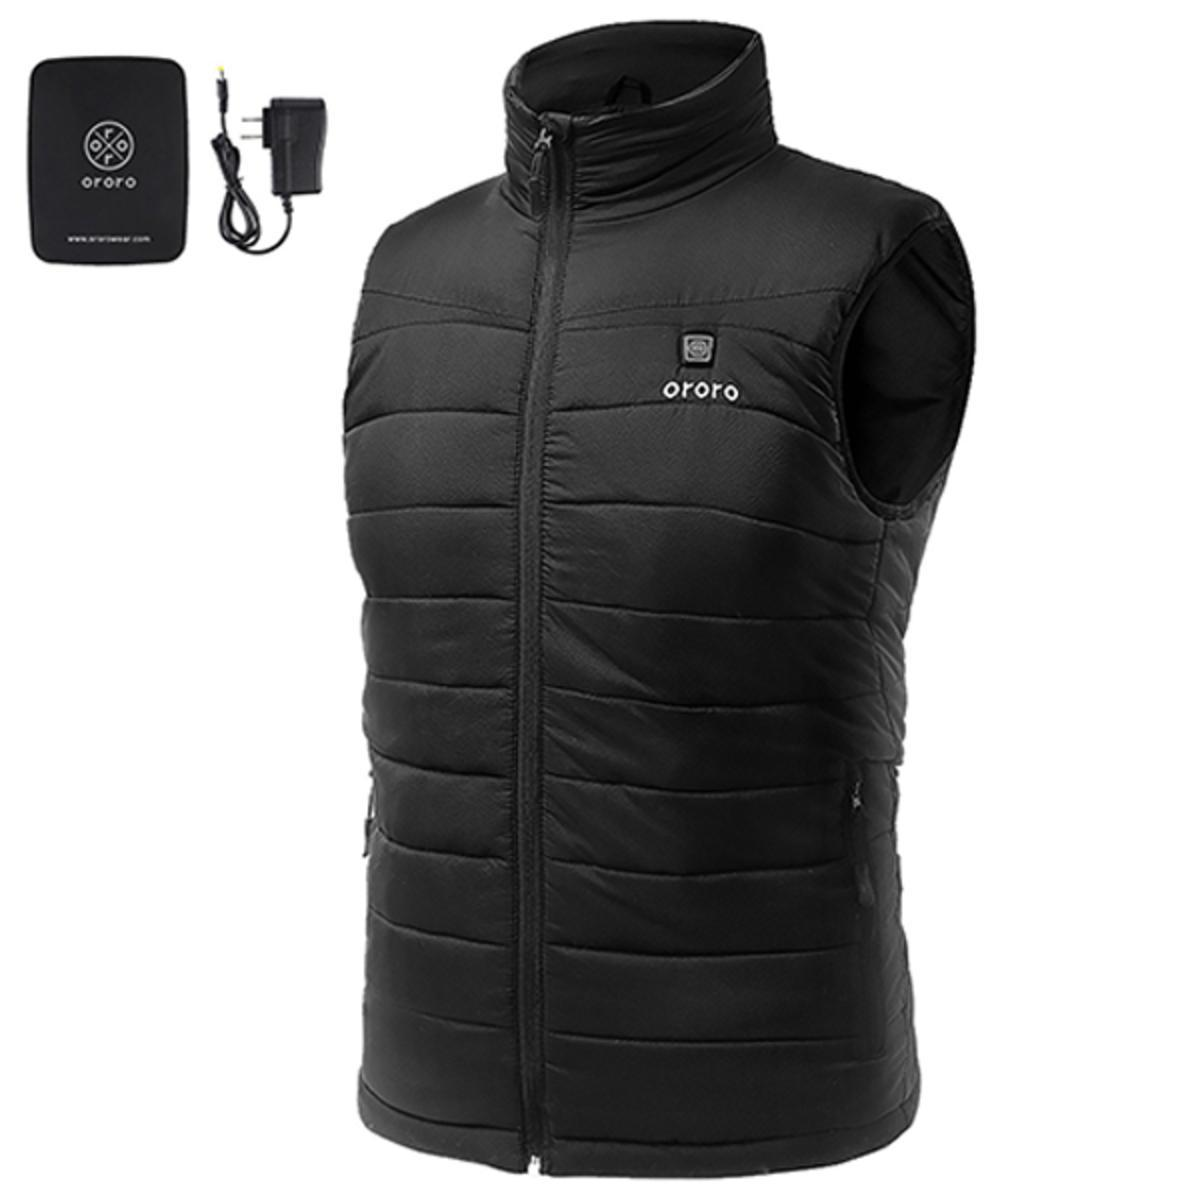 Ororo Men's Lightweight Heated Vest with Battery Pack ...